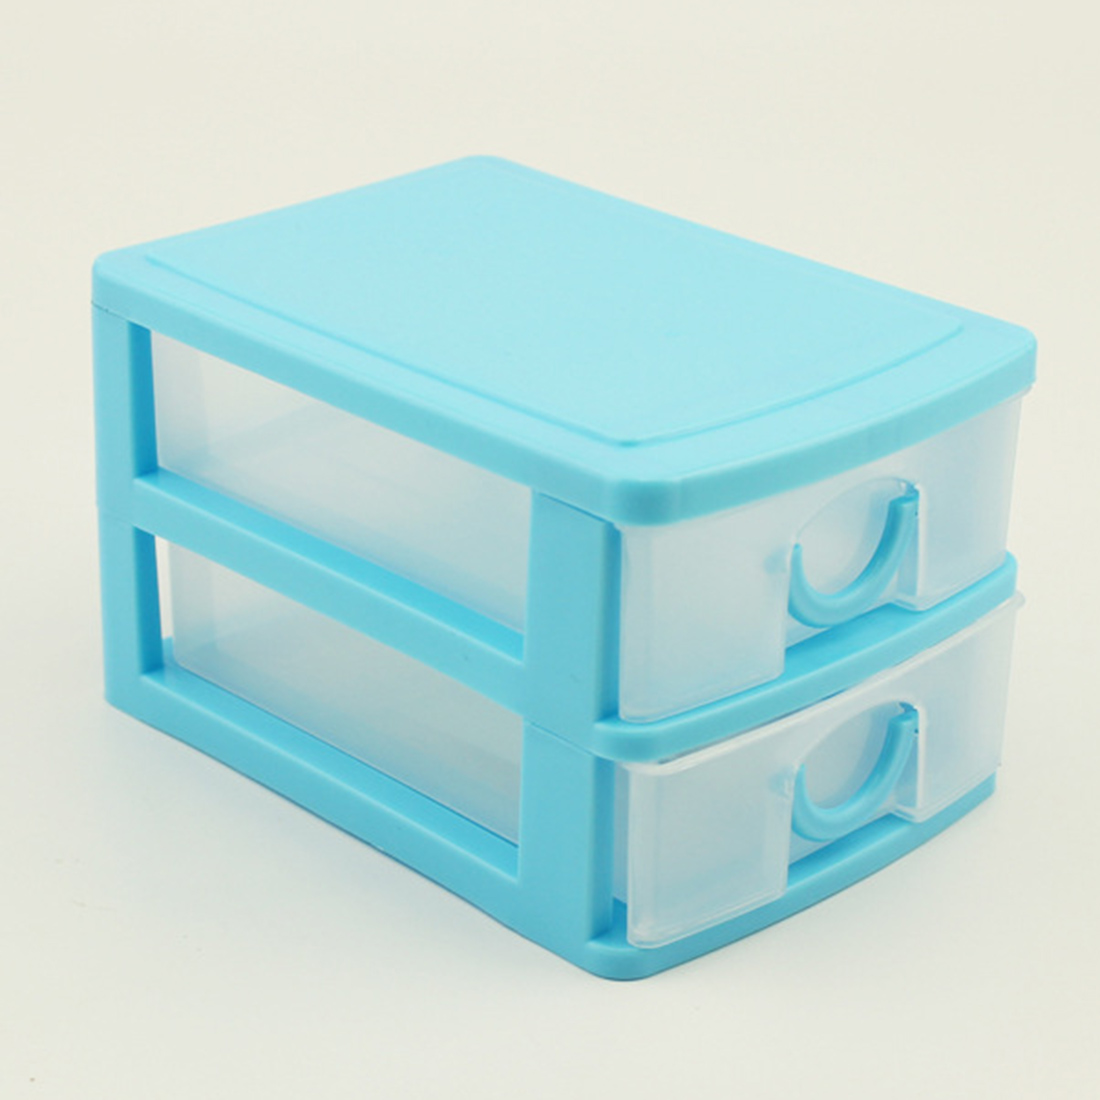 TSSAAG Candy Color Three Layers Mini Draw-out Desk Storage Box Container - Pink